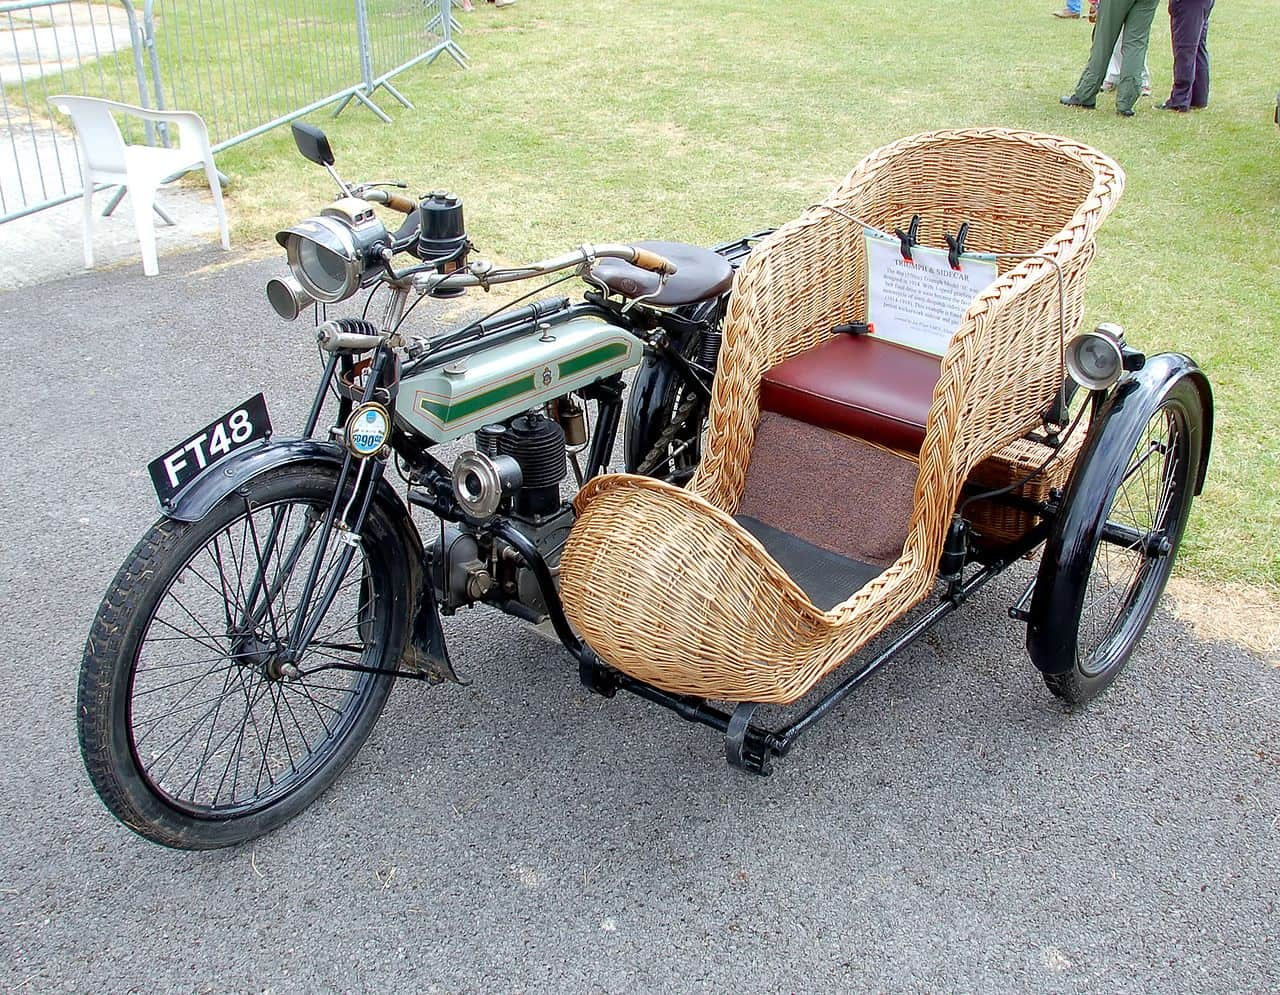 1914 Triumph Model H motorcycle with sidecar